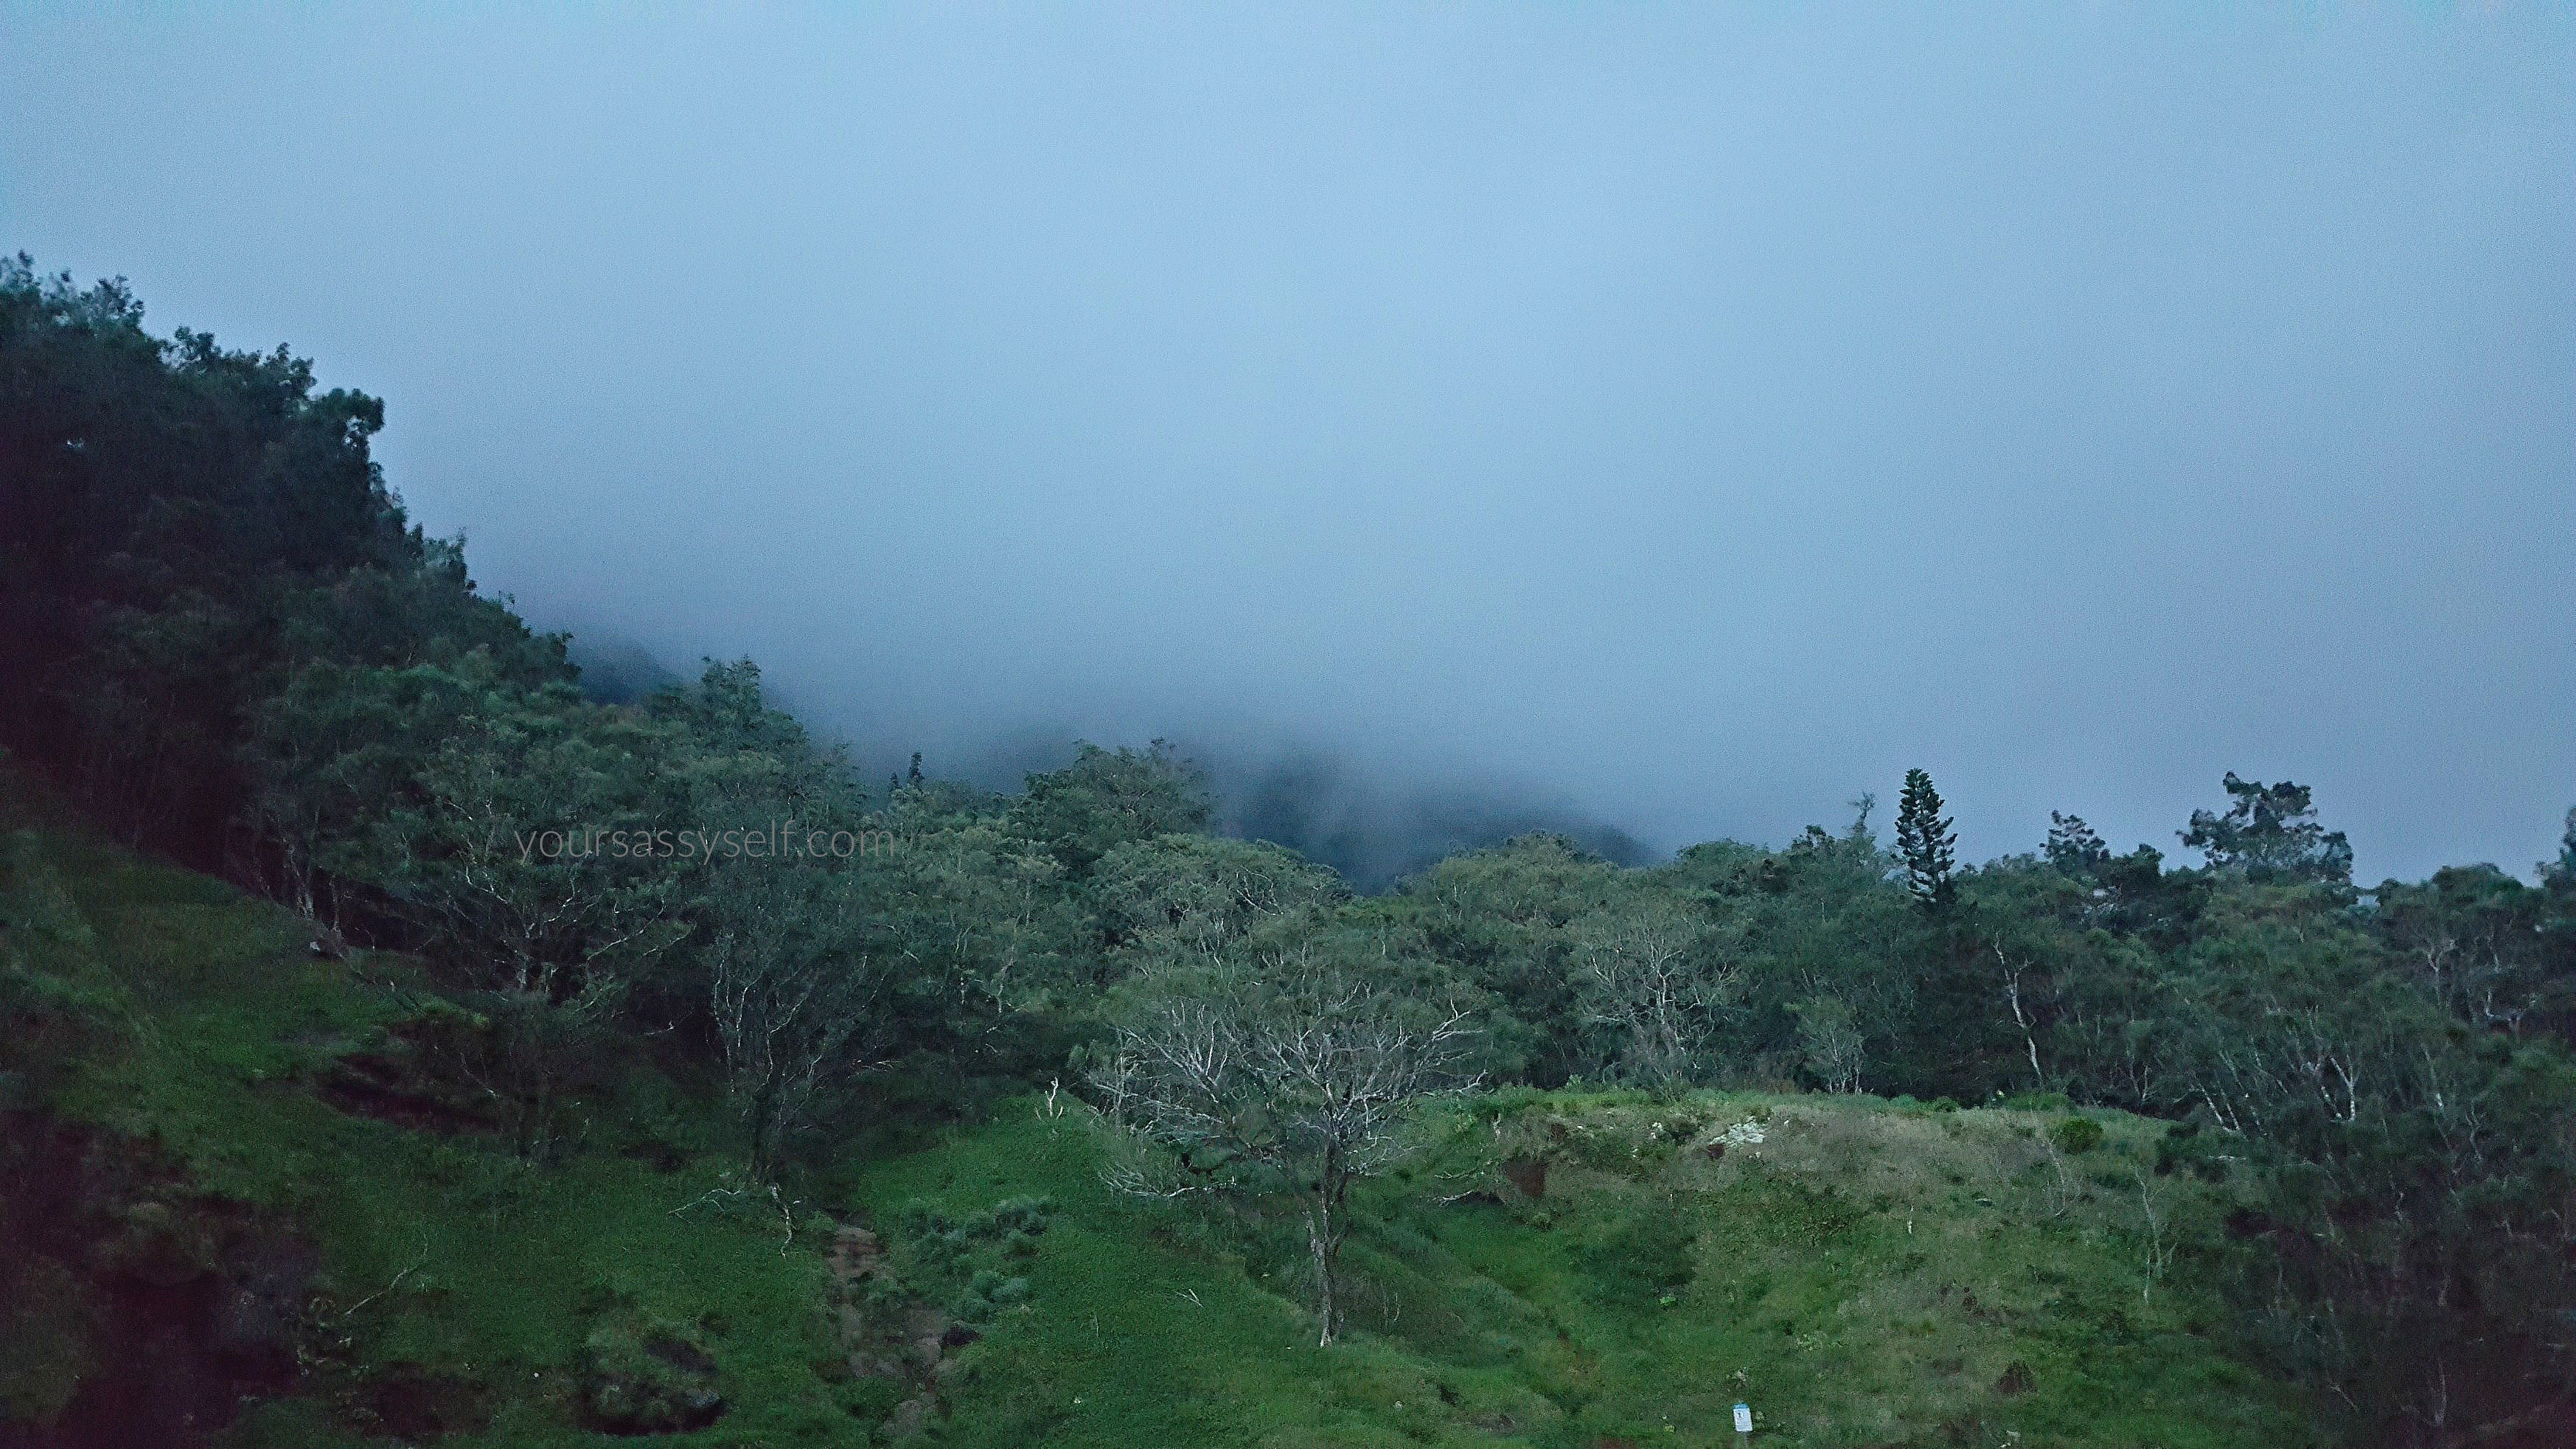 Cloud covered Mountain Tops at Pali Lookout - yoursassyself.com